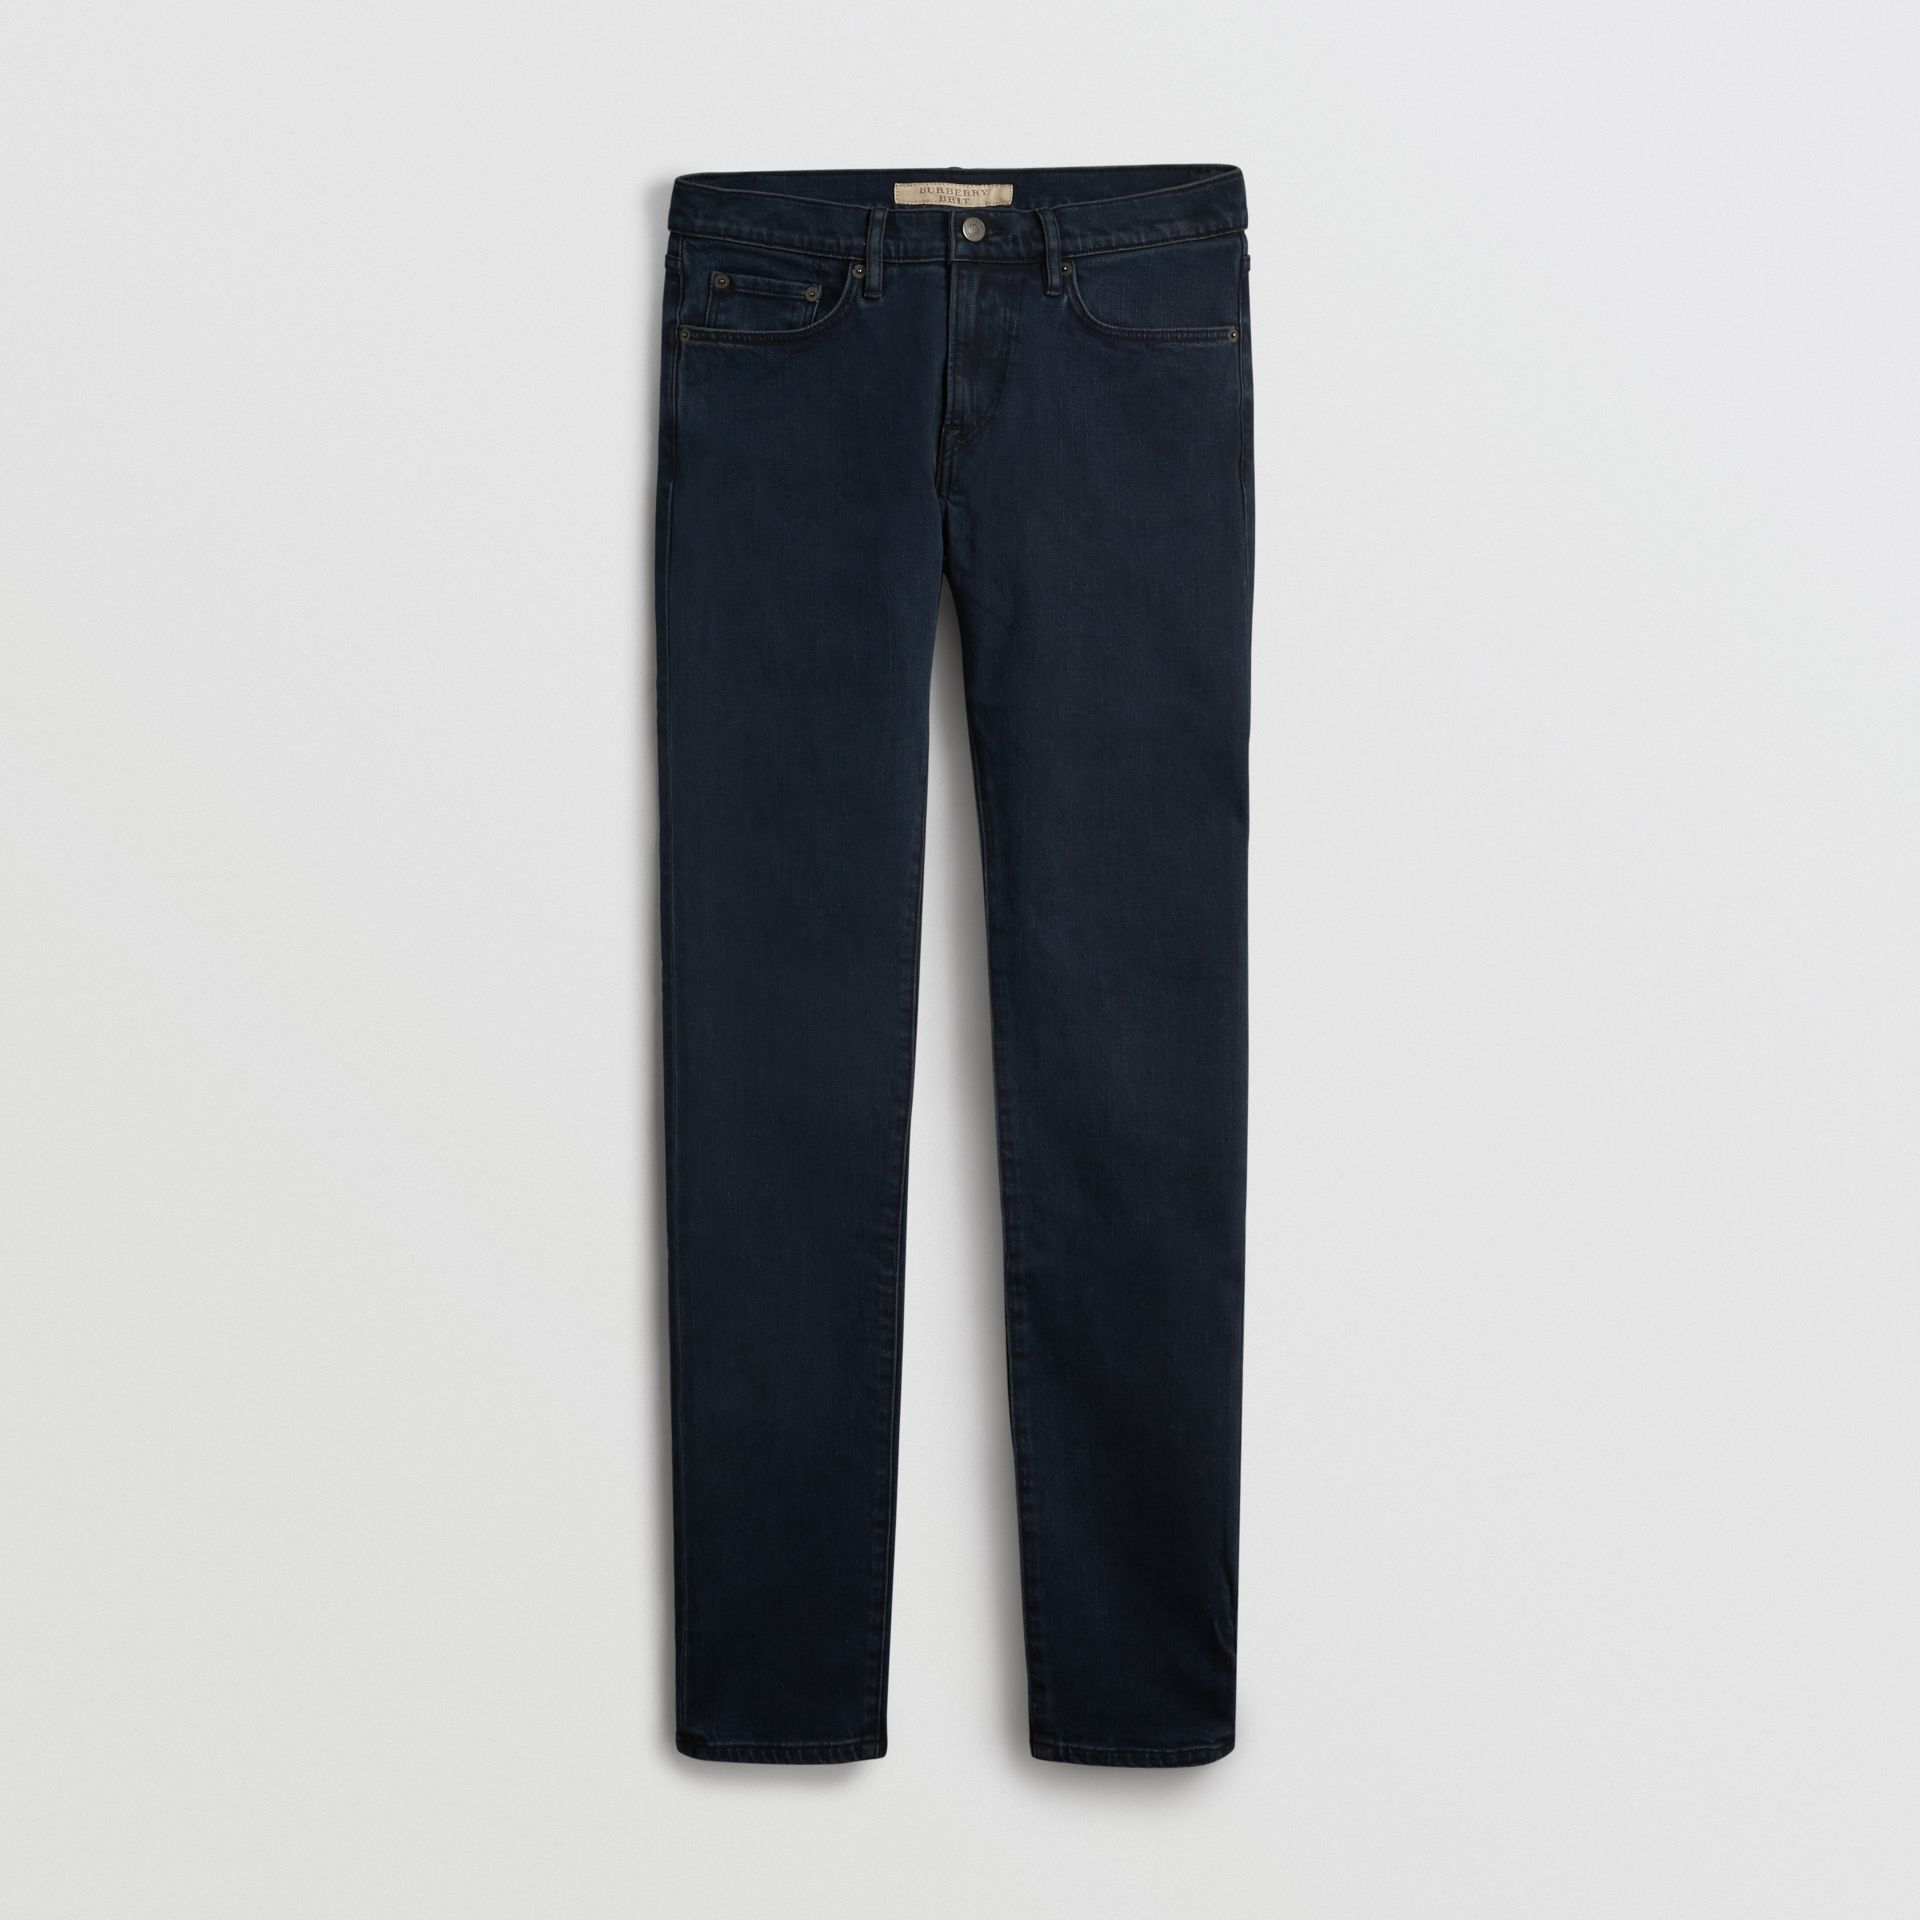 Slim Fit Stretch Denim Jeans in Dark Indigo - Men | Burberry Australia - gallery image 3